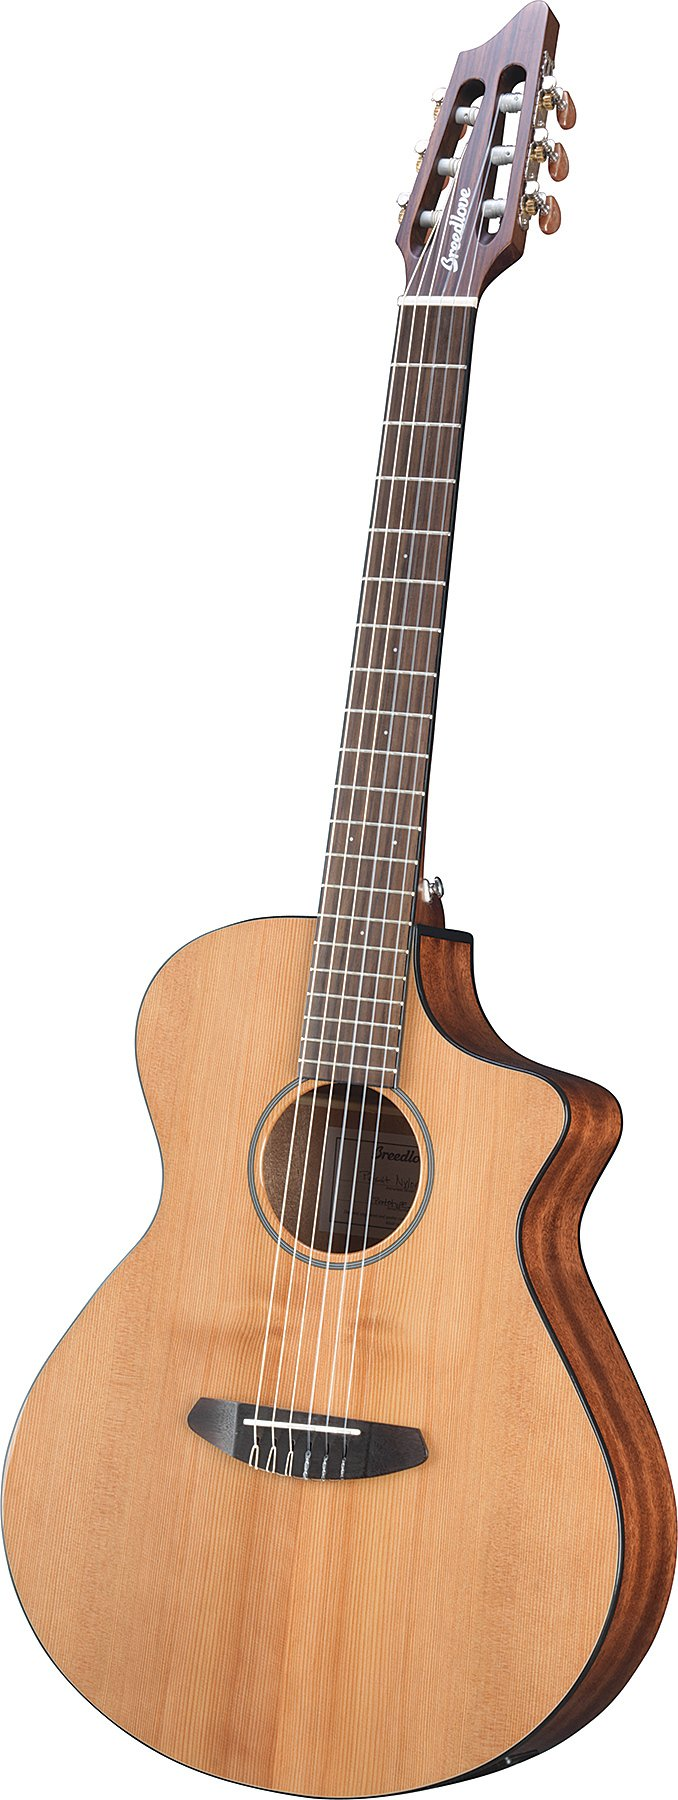 Nylon-String Acoustic-Electric Guitar